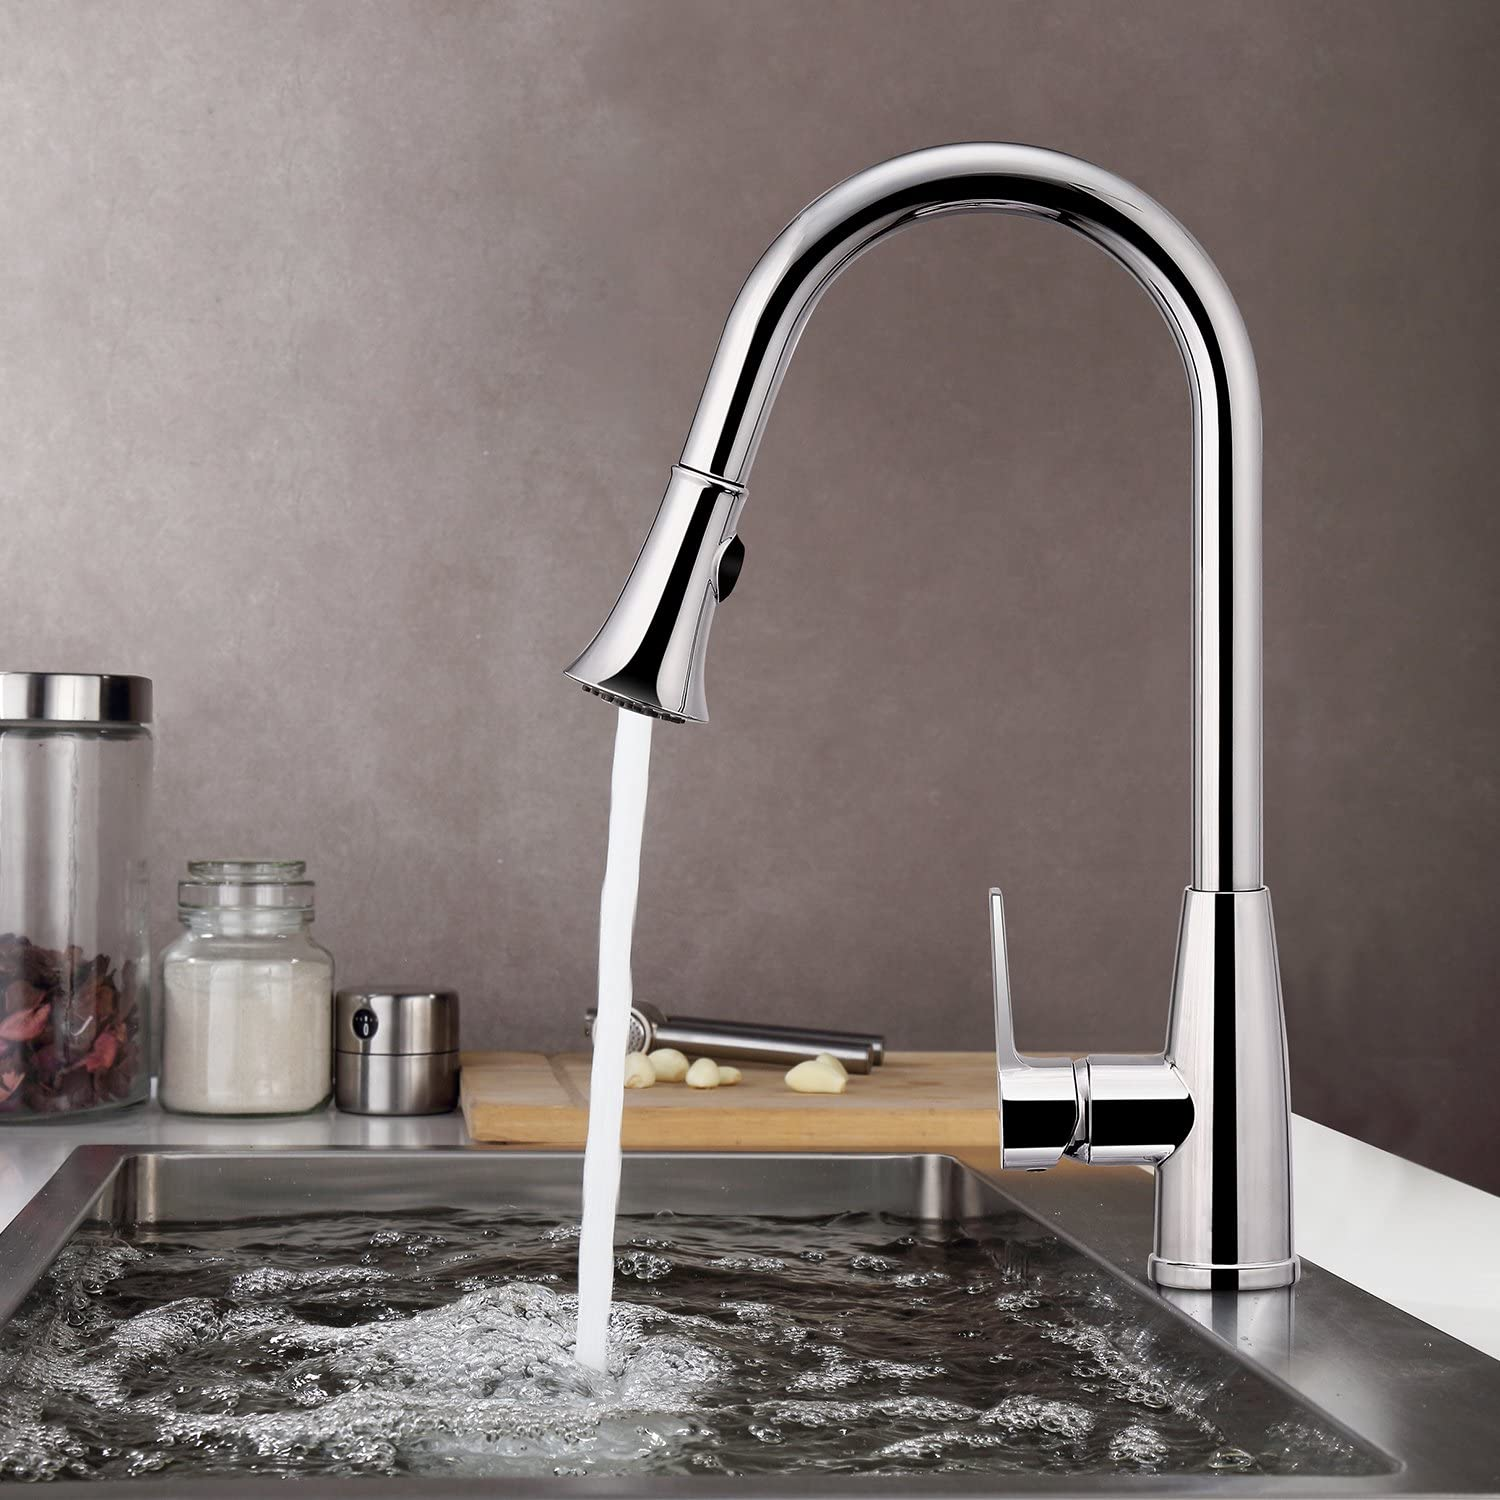 Bathwa Single Lever Kitchen Sink Mixer Tap, Washbasin Tap with pull-out spout, silver